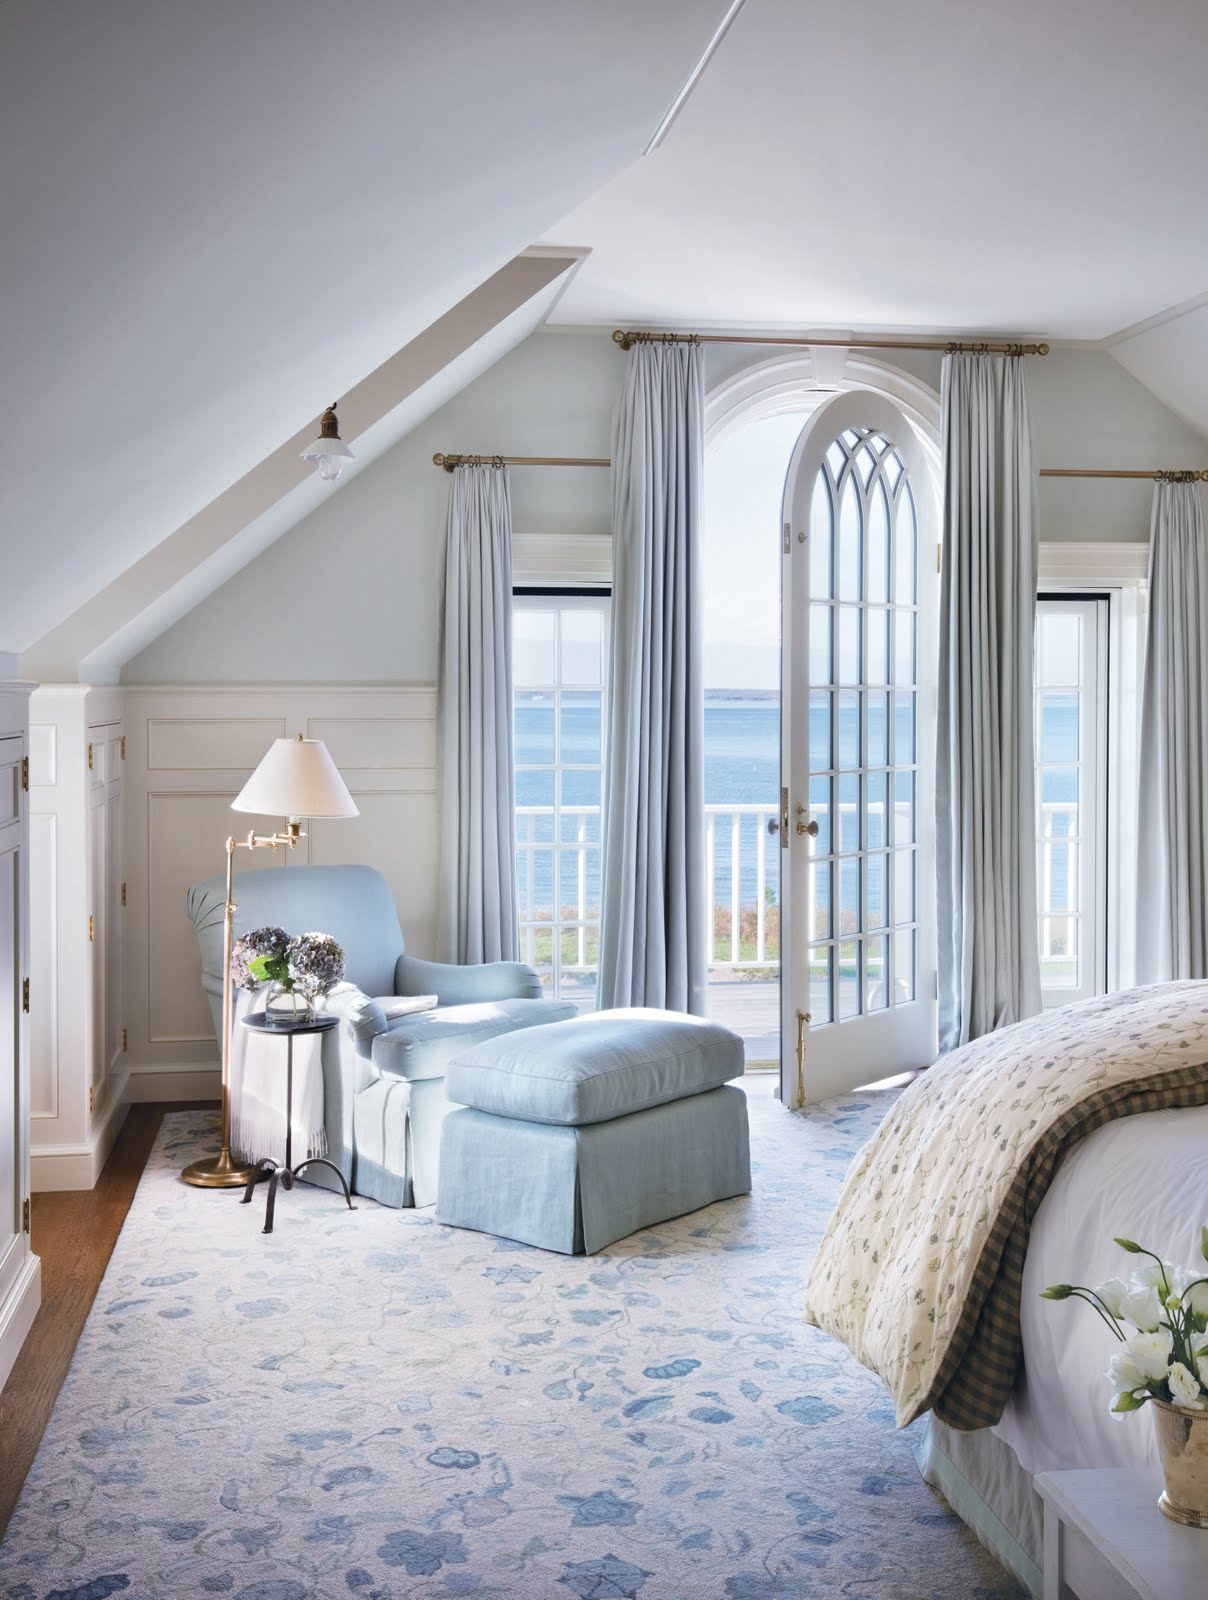 Madison muse victoria hagen interiors Blue beach bedroom ideas